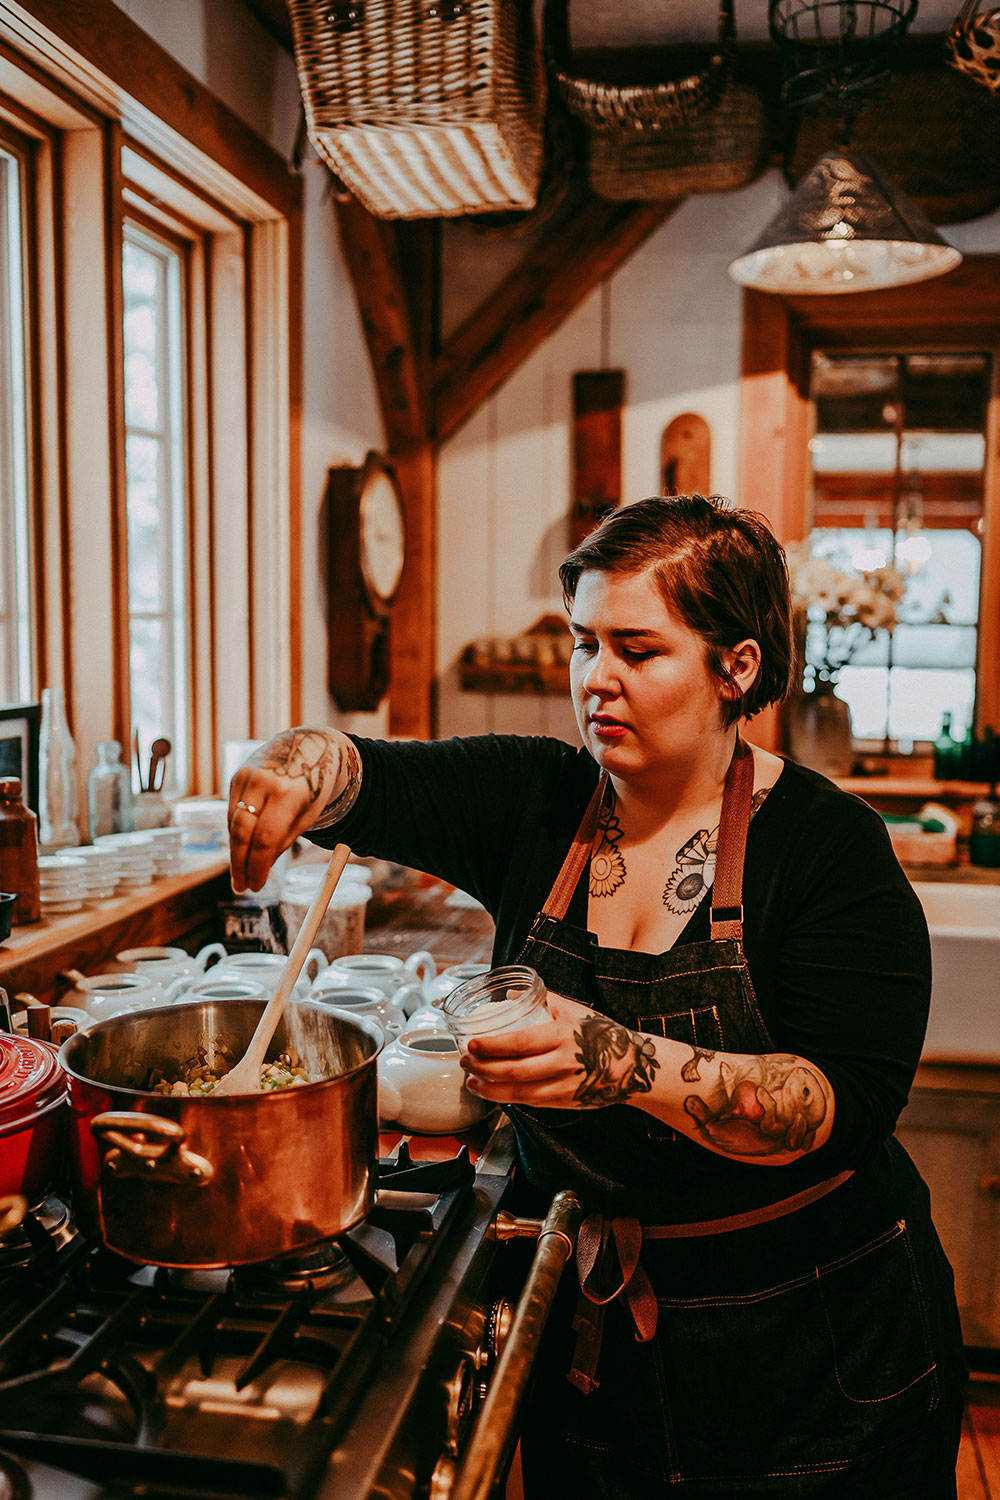 A female chef with tattoos prepares food